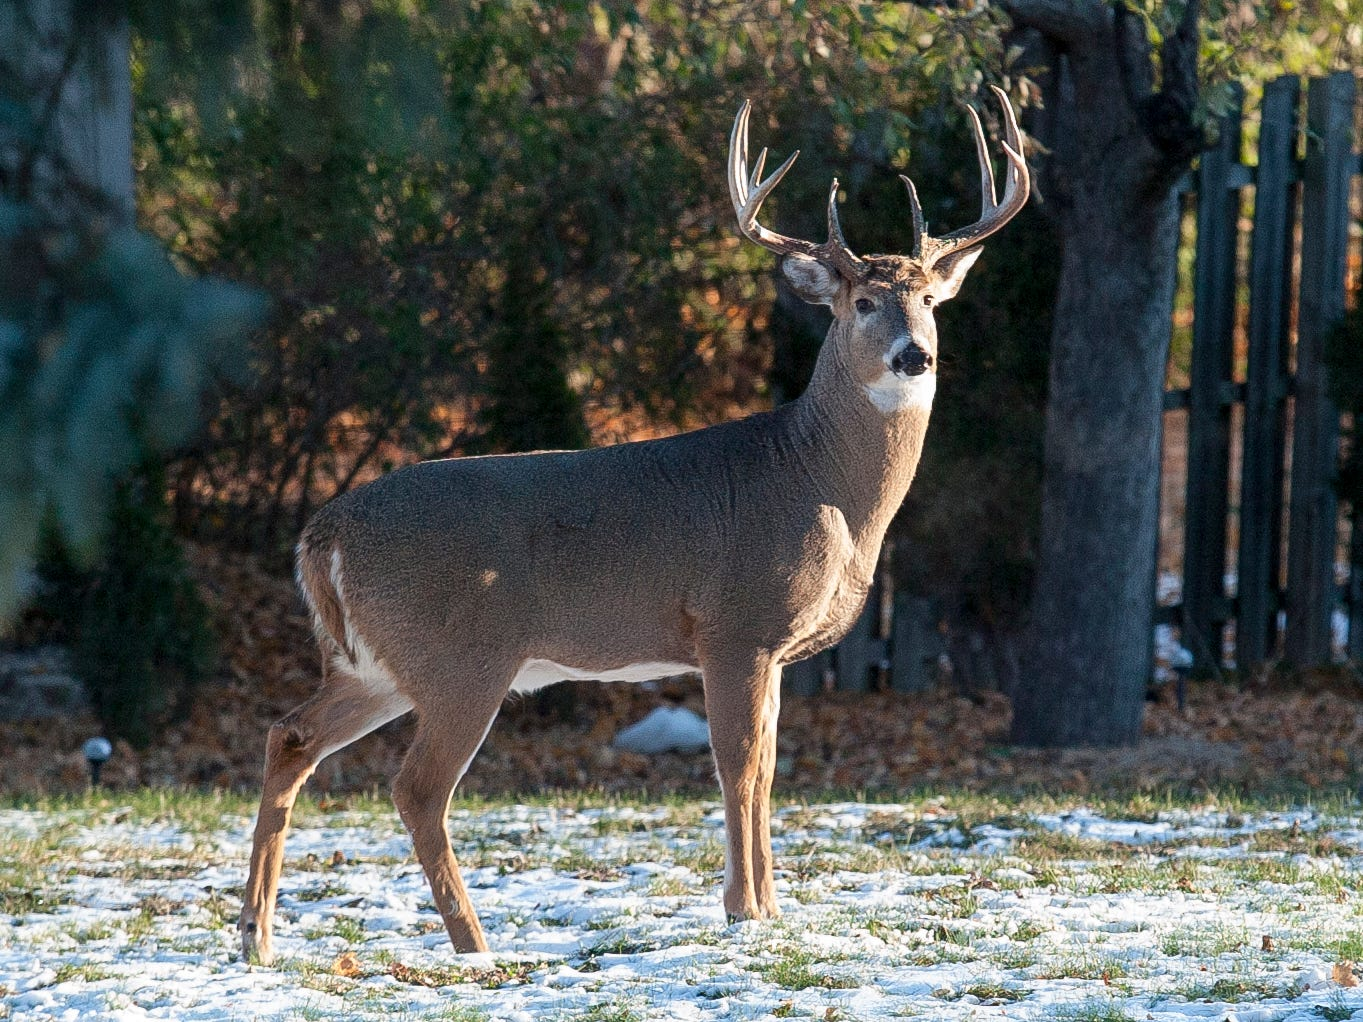 A buck scans the backyard in a City of Sheboygan home in the 1000 block of N. 23rd Street, Wednesday November 14, 2018, in Sheboygan, Wis.